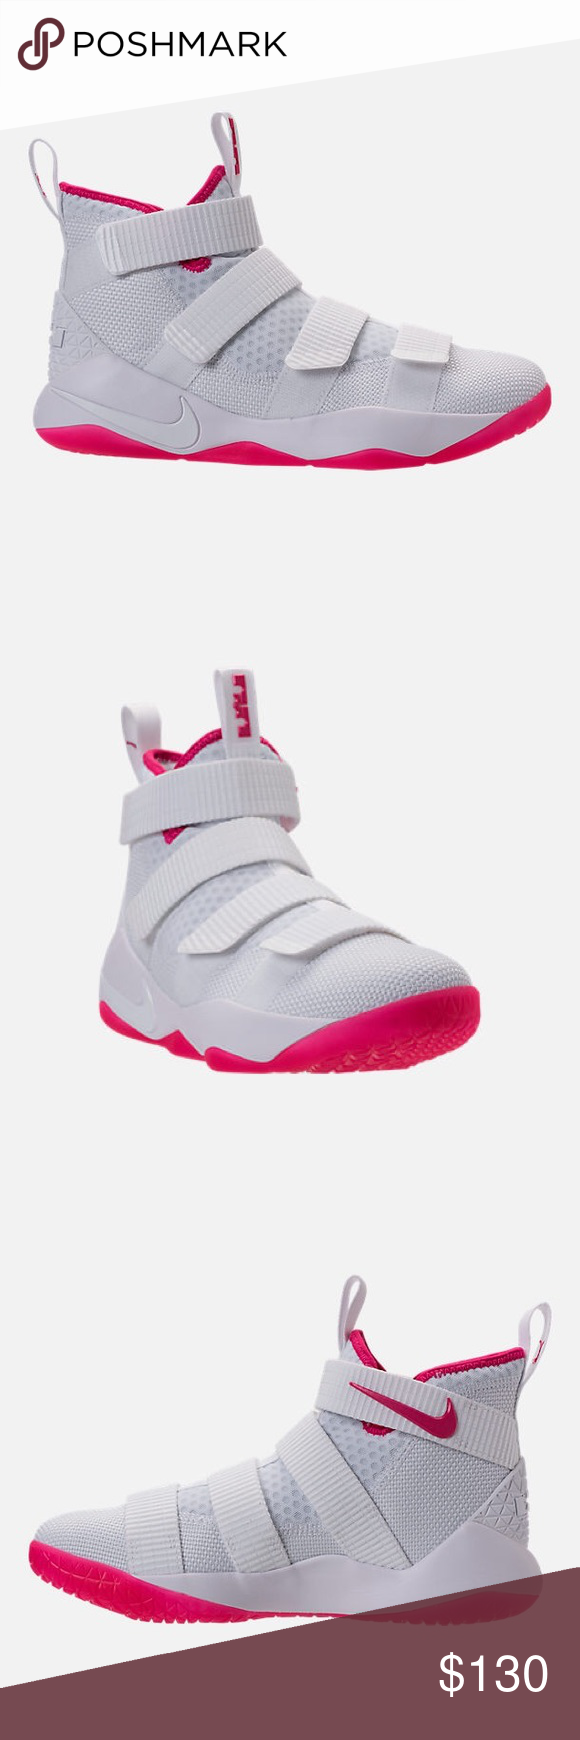 30ad2412cd9f NIKE LEBRON SOLDIER BASKETBALL SHOES He ll get the performance he needs and  the style